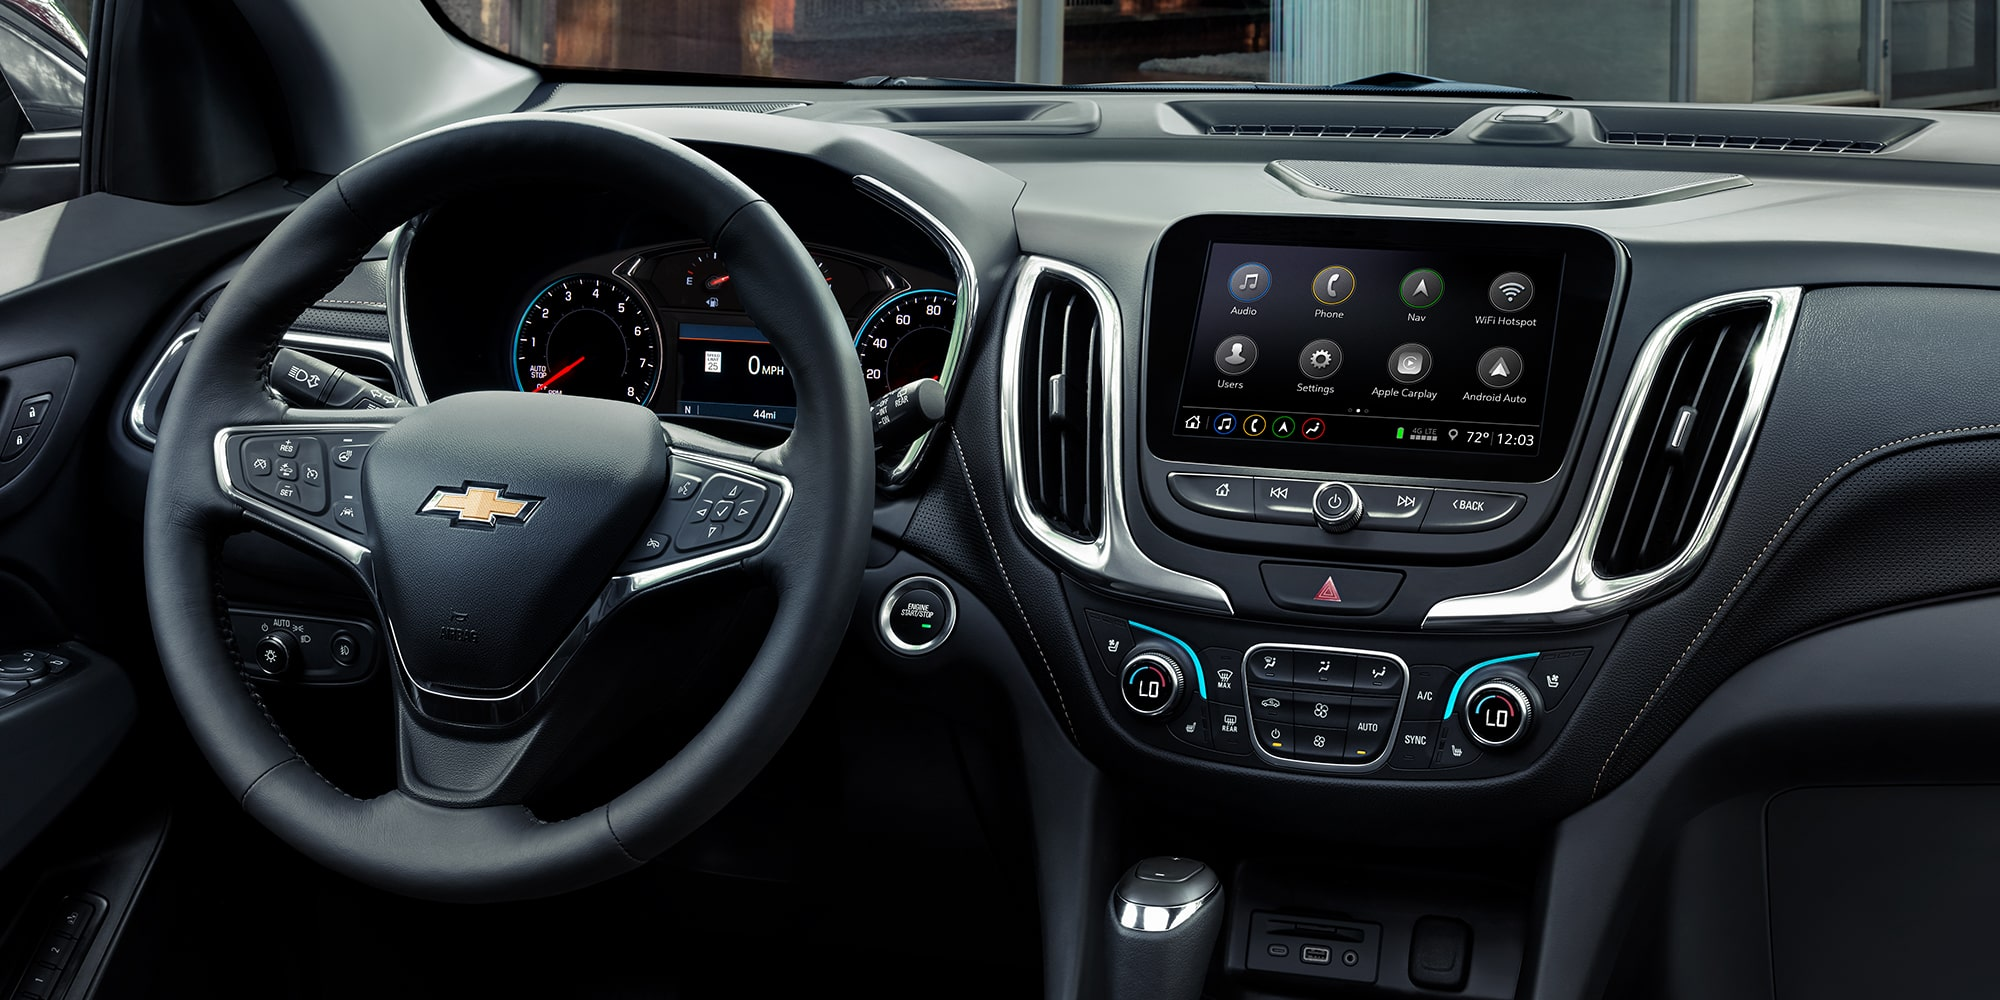 Chevrolet Cruze Infotainment System: Trademarks and License Agreements